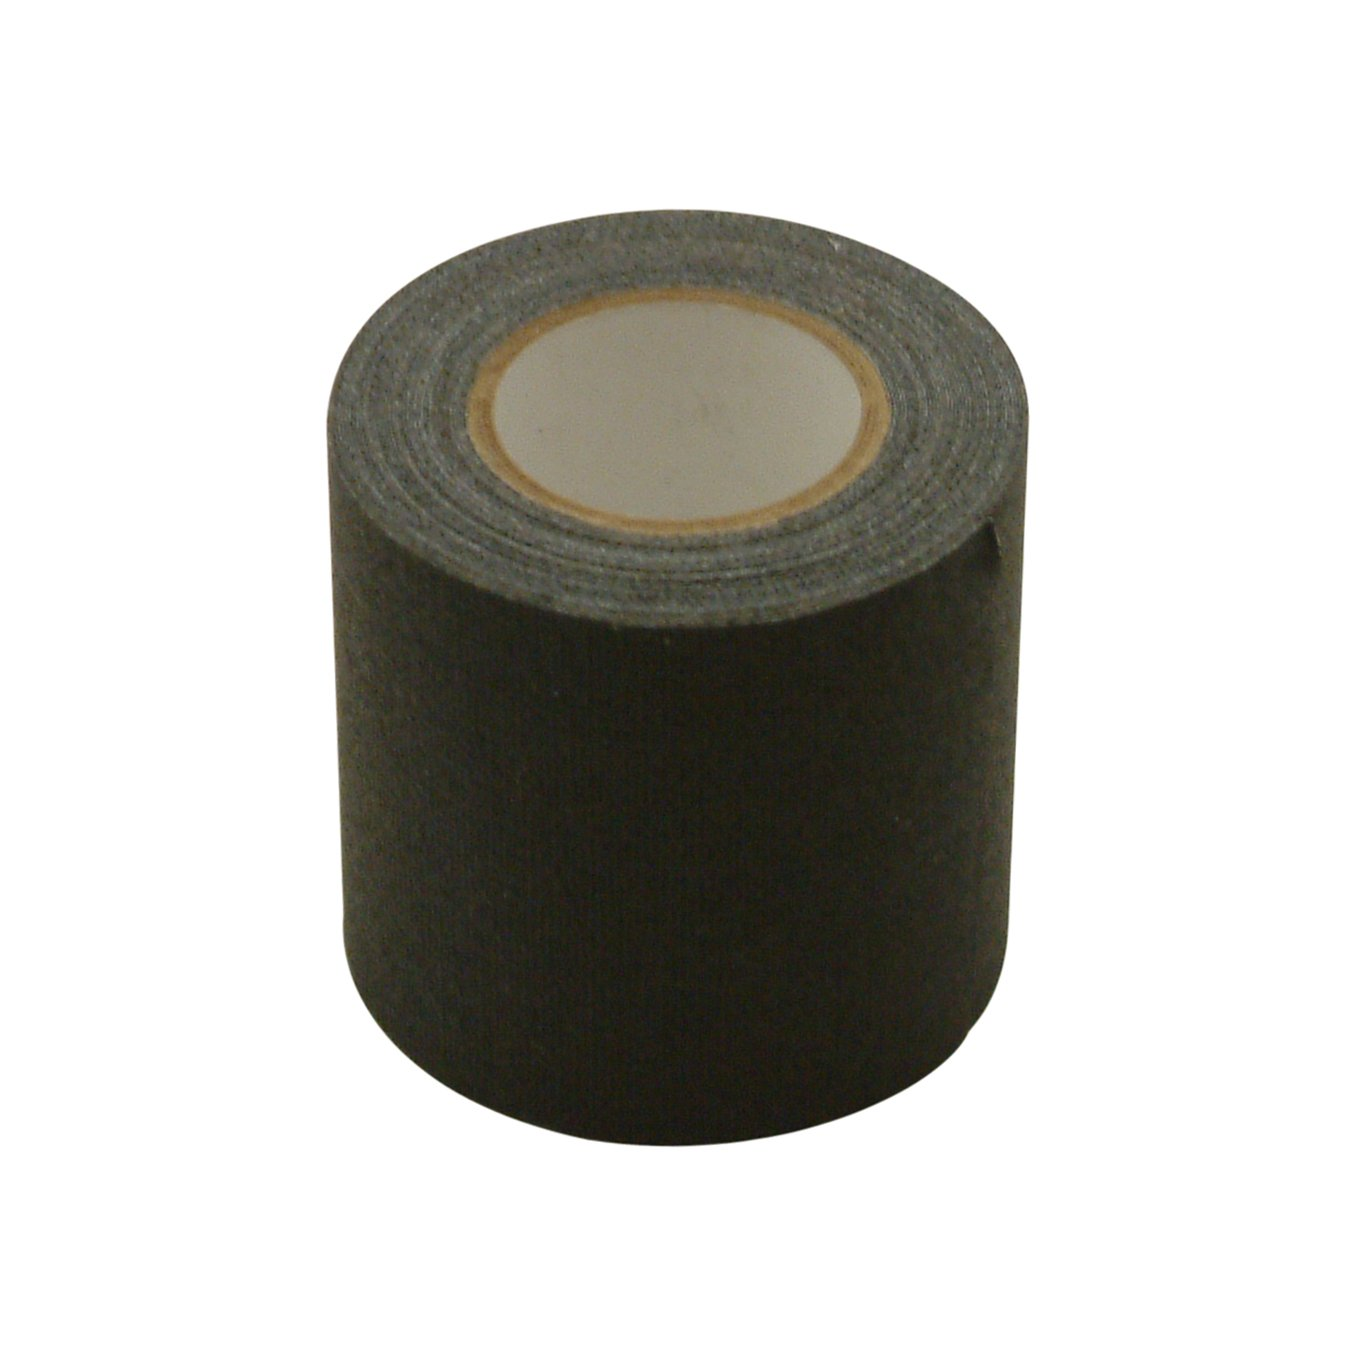 Jvcc Repair 1 Leather And Vinyl Repair Tape 2 In X 15 Ft